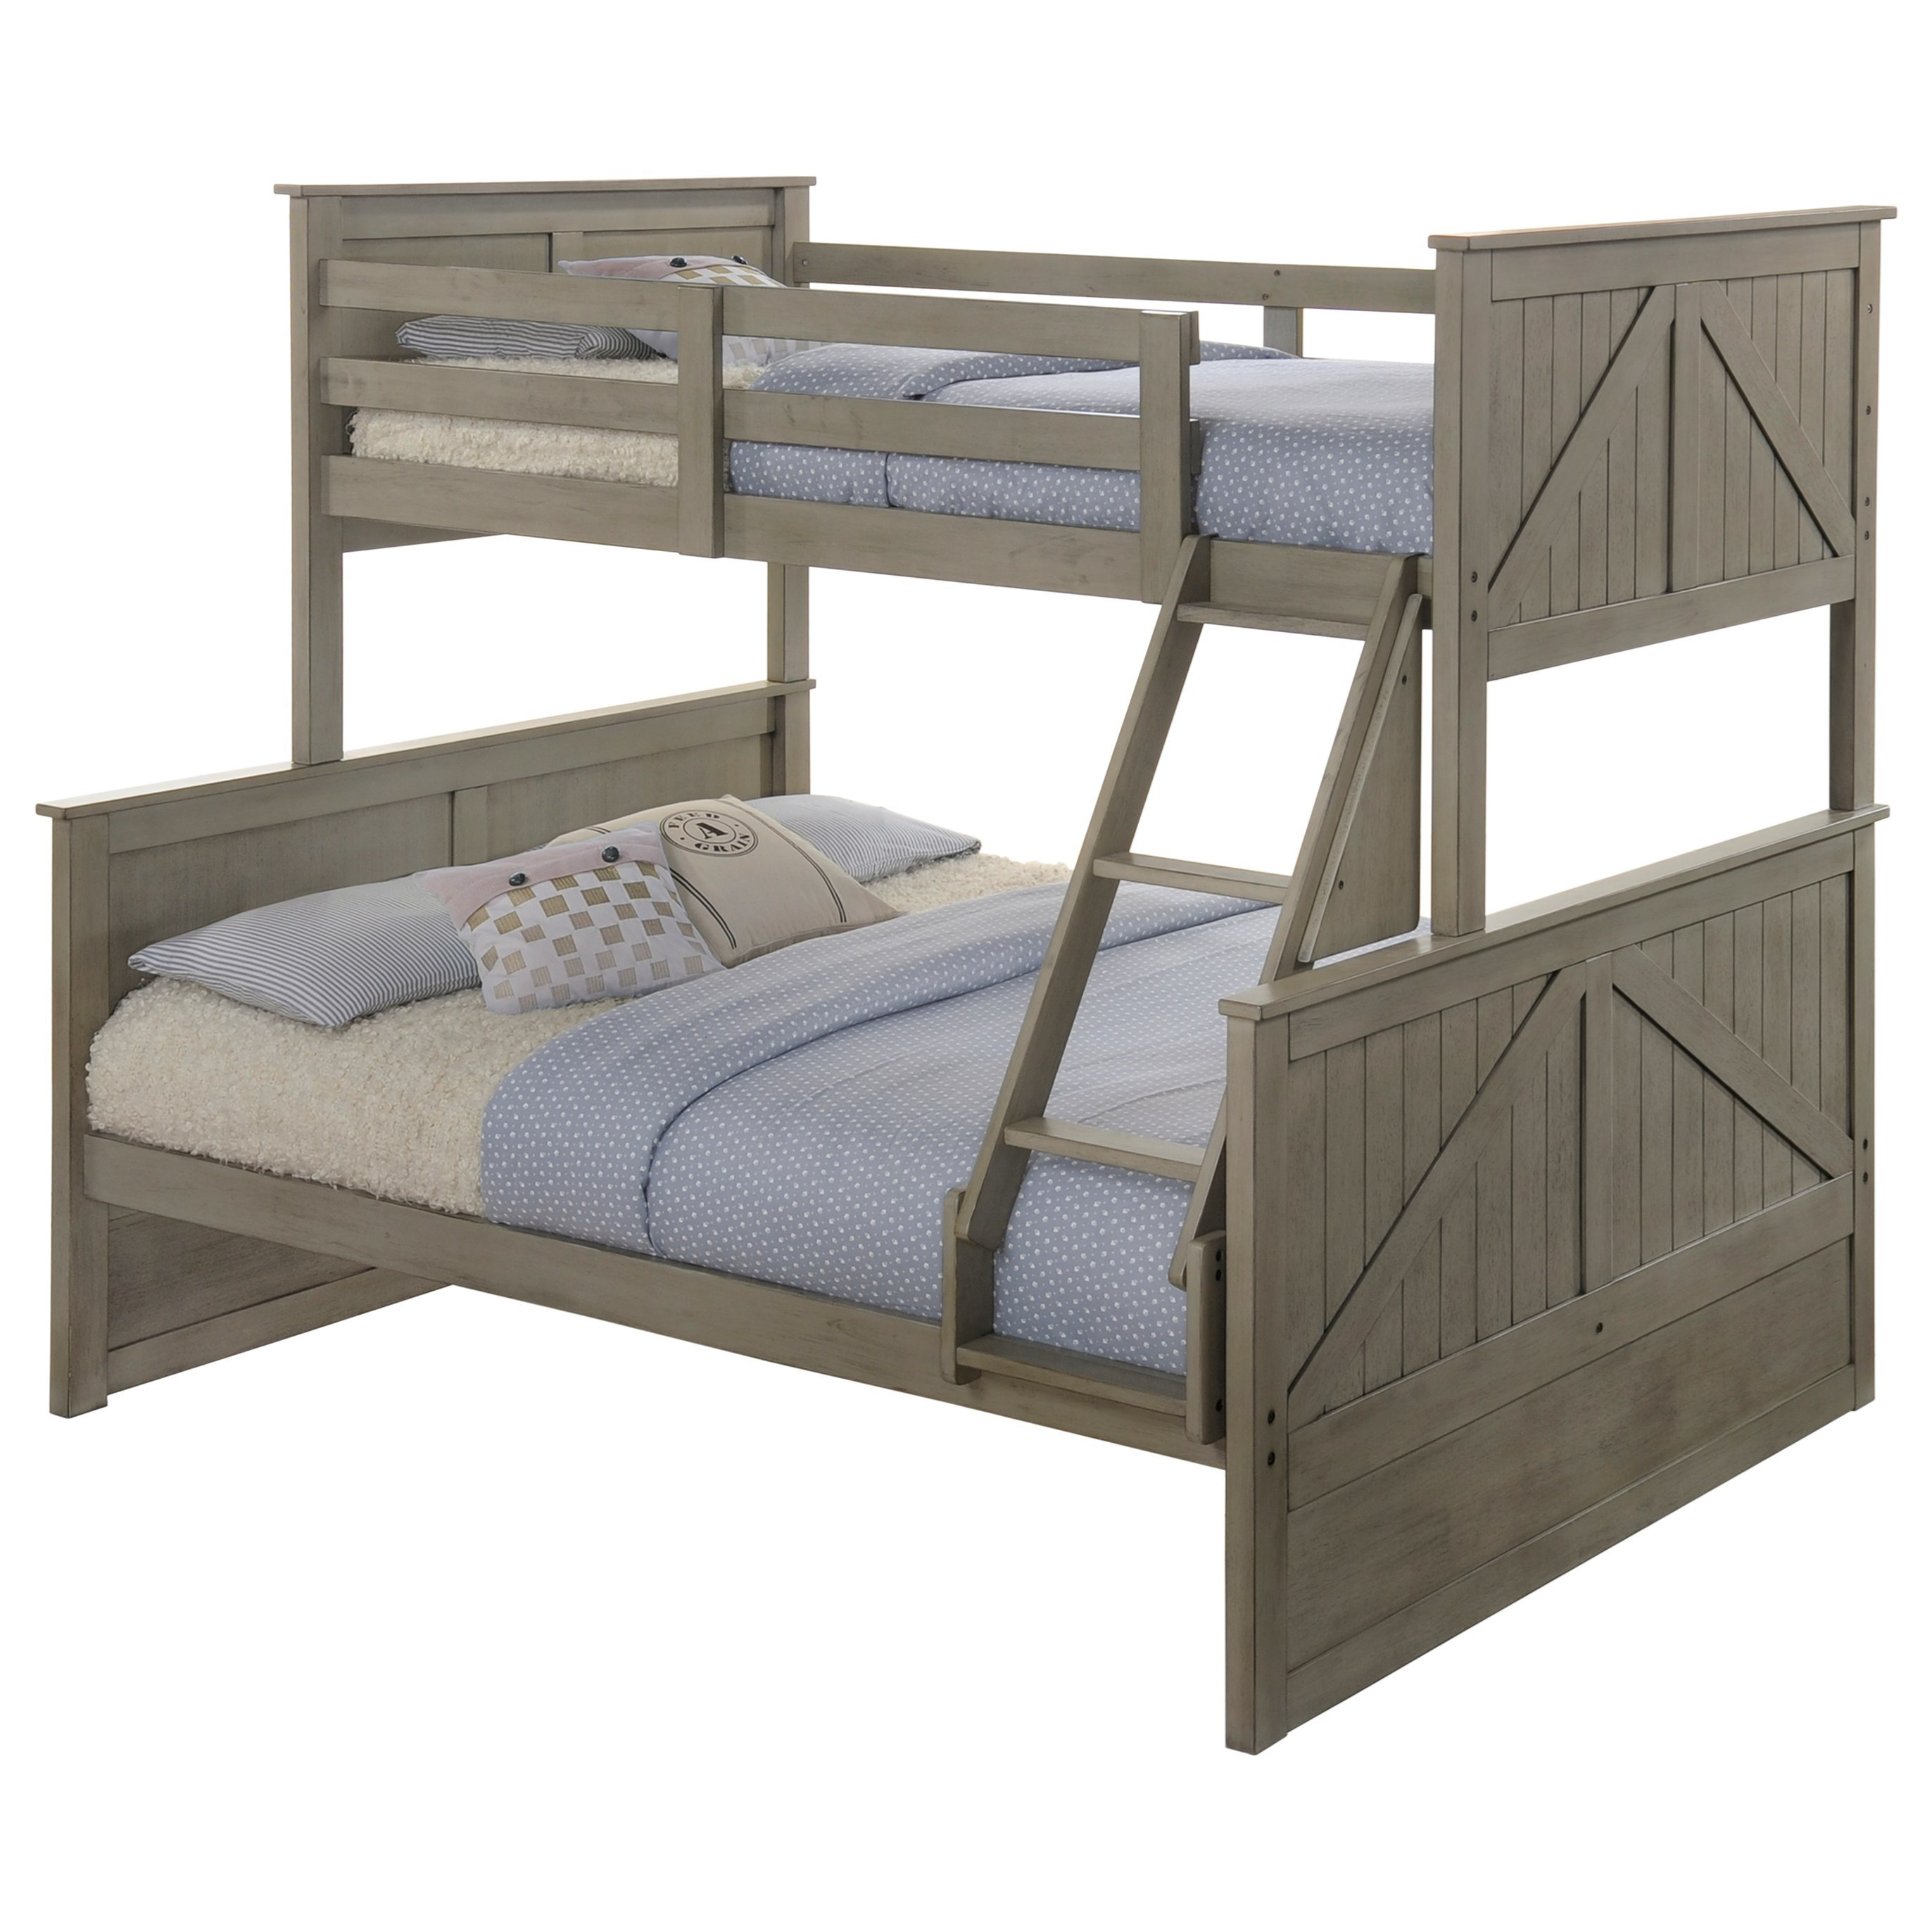 Ashland Twin Over Full Bunk Bed by United Furniture Industries at Dream Home Interiors